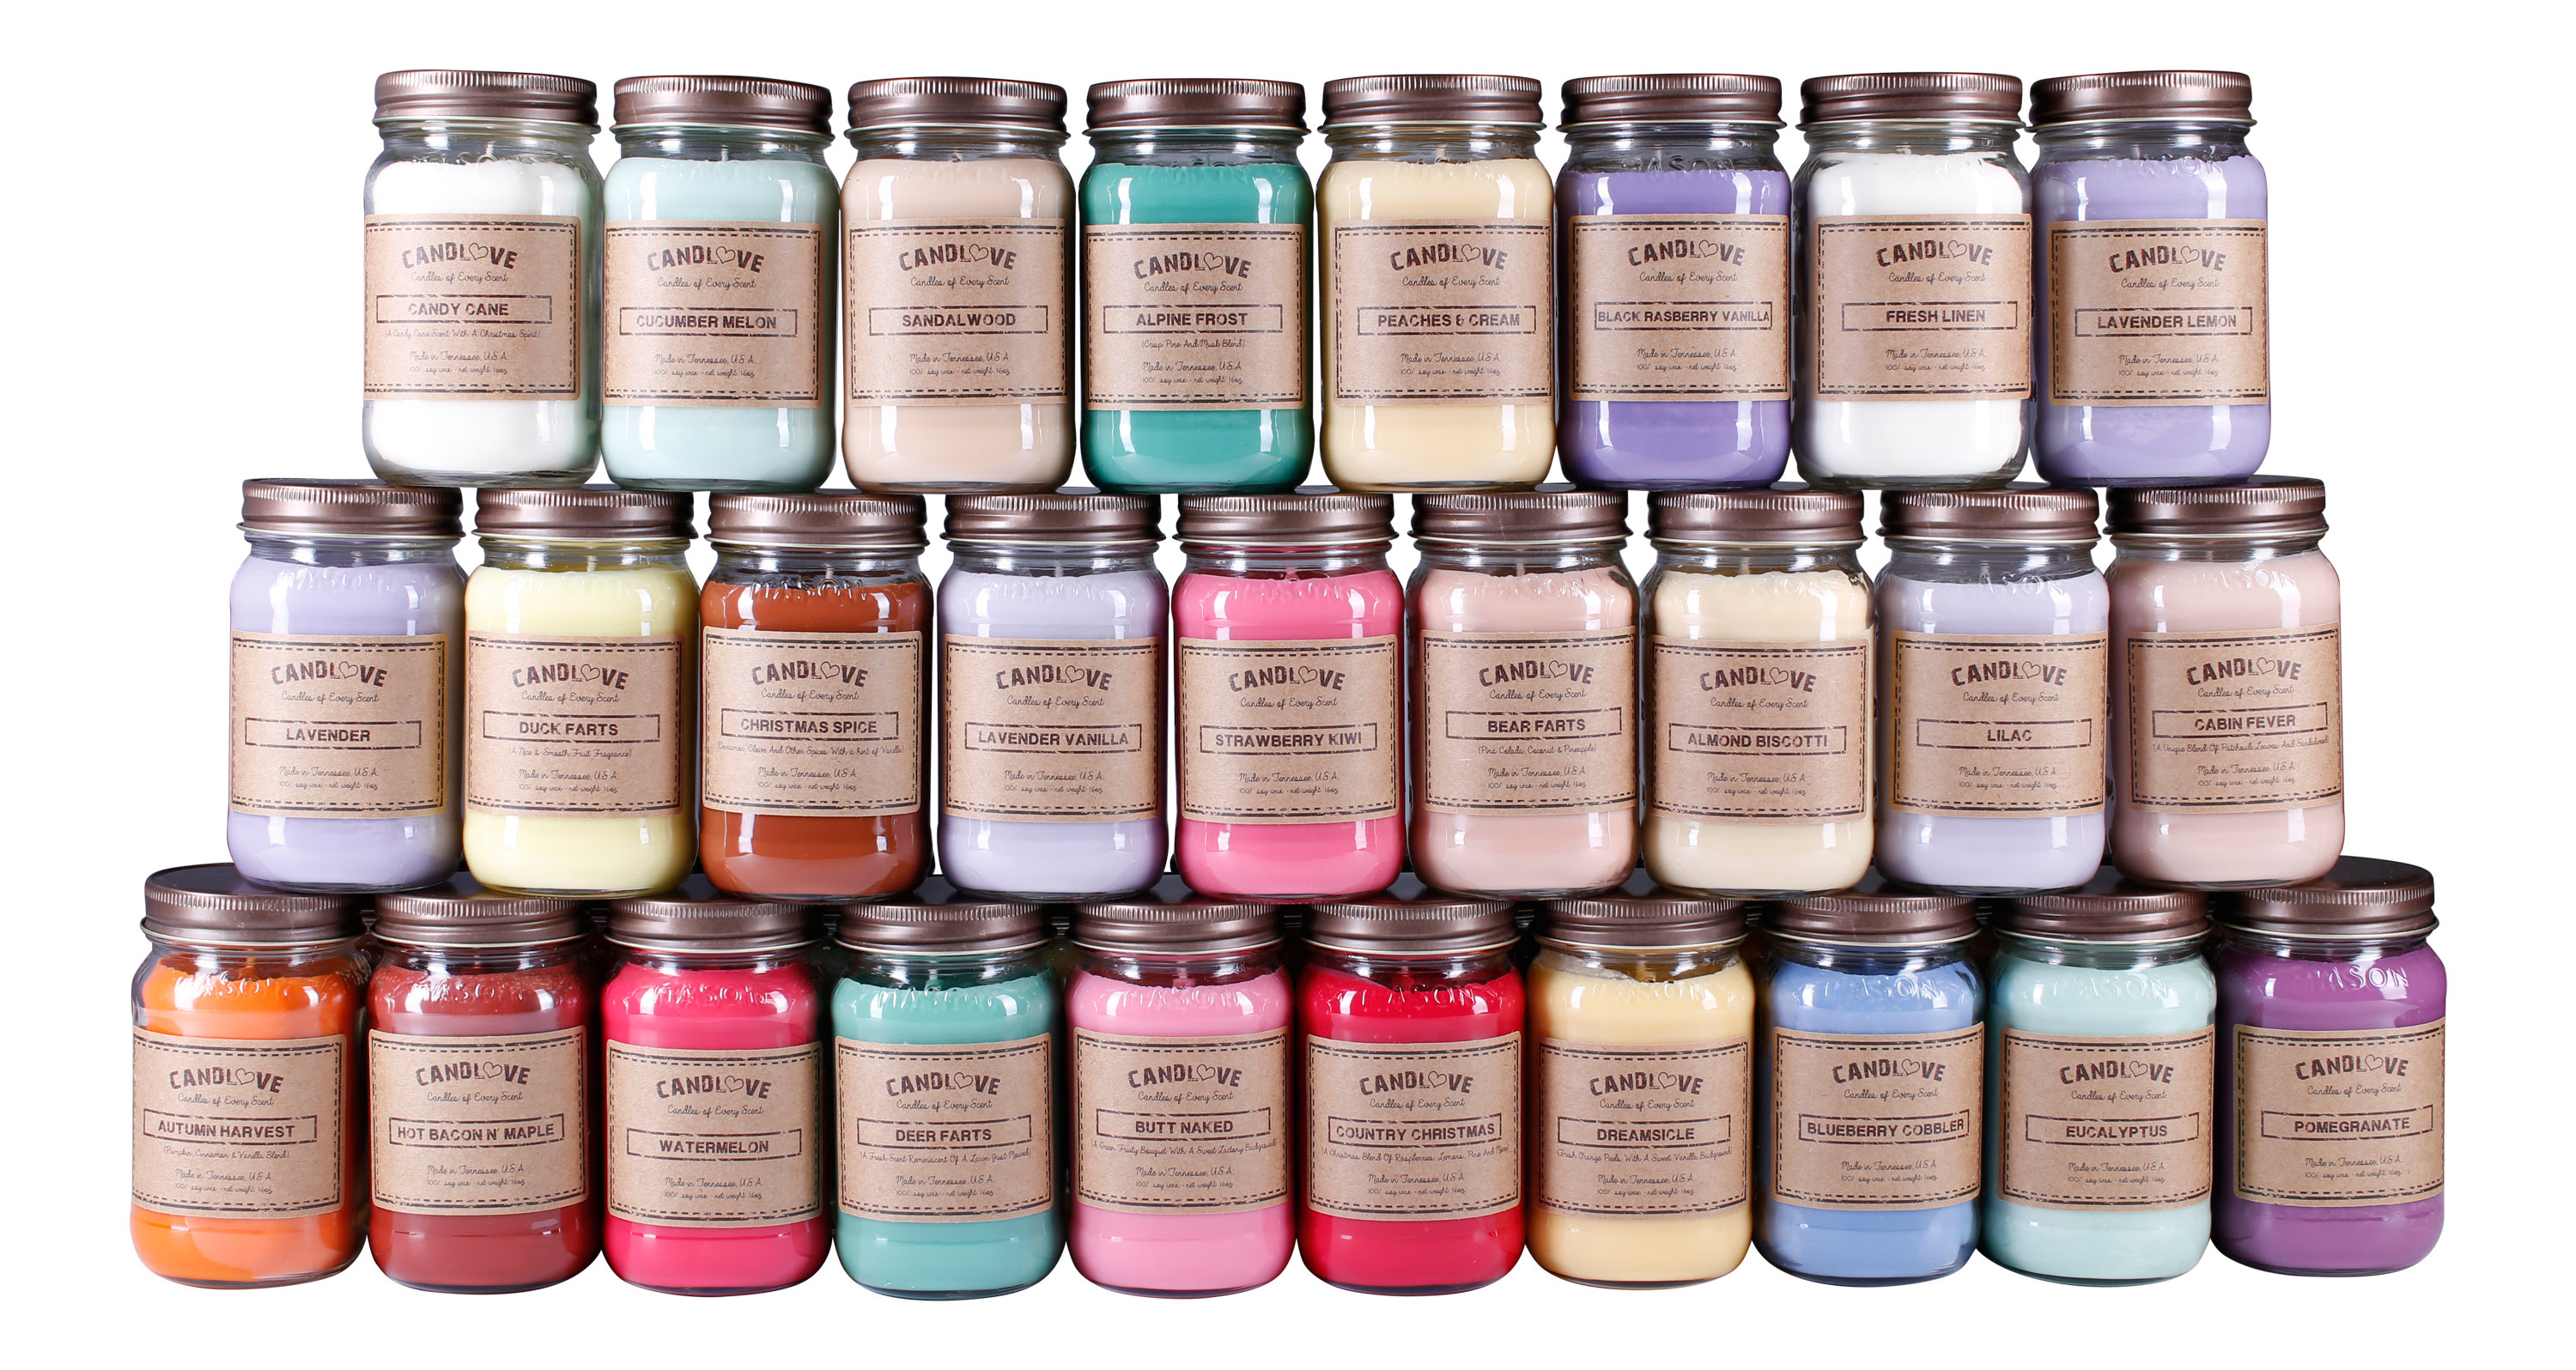 CANDLOVE Mason Jar Soy Candle Review | Parenting Patch